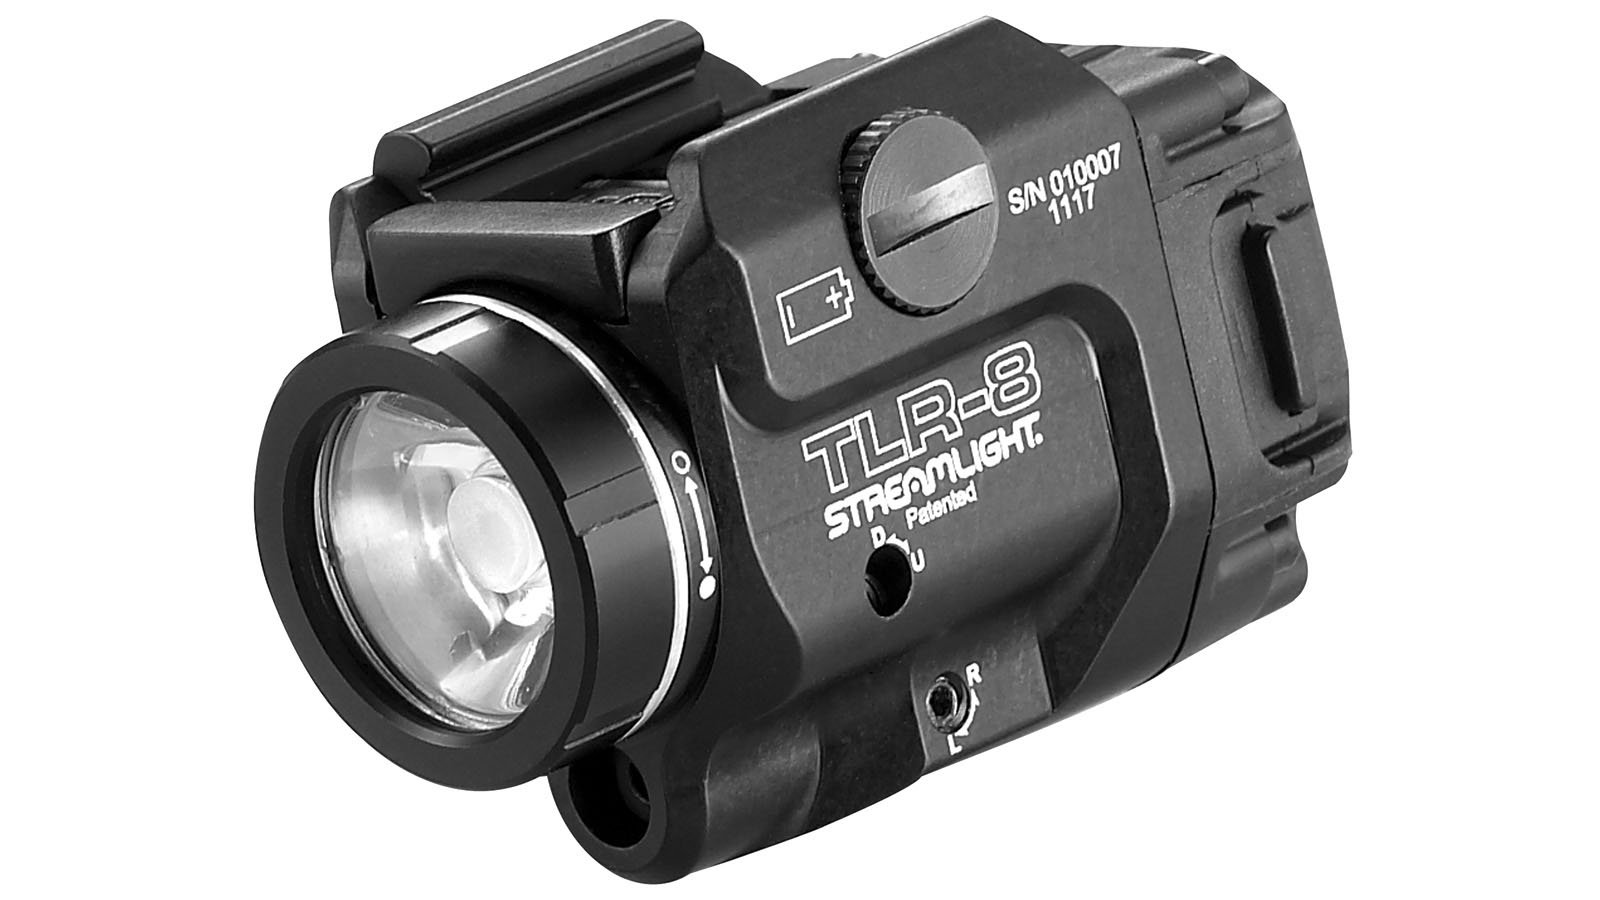 Streamlight TLR-8 Tactical Weapon Light/laser 500 Lumens Black Finish ''New Item'' by LS